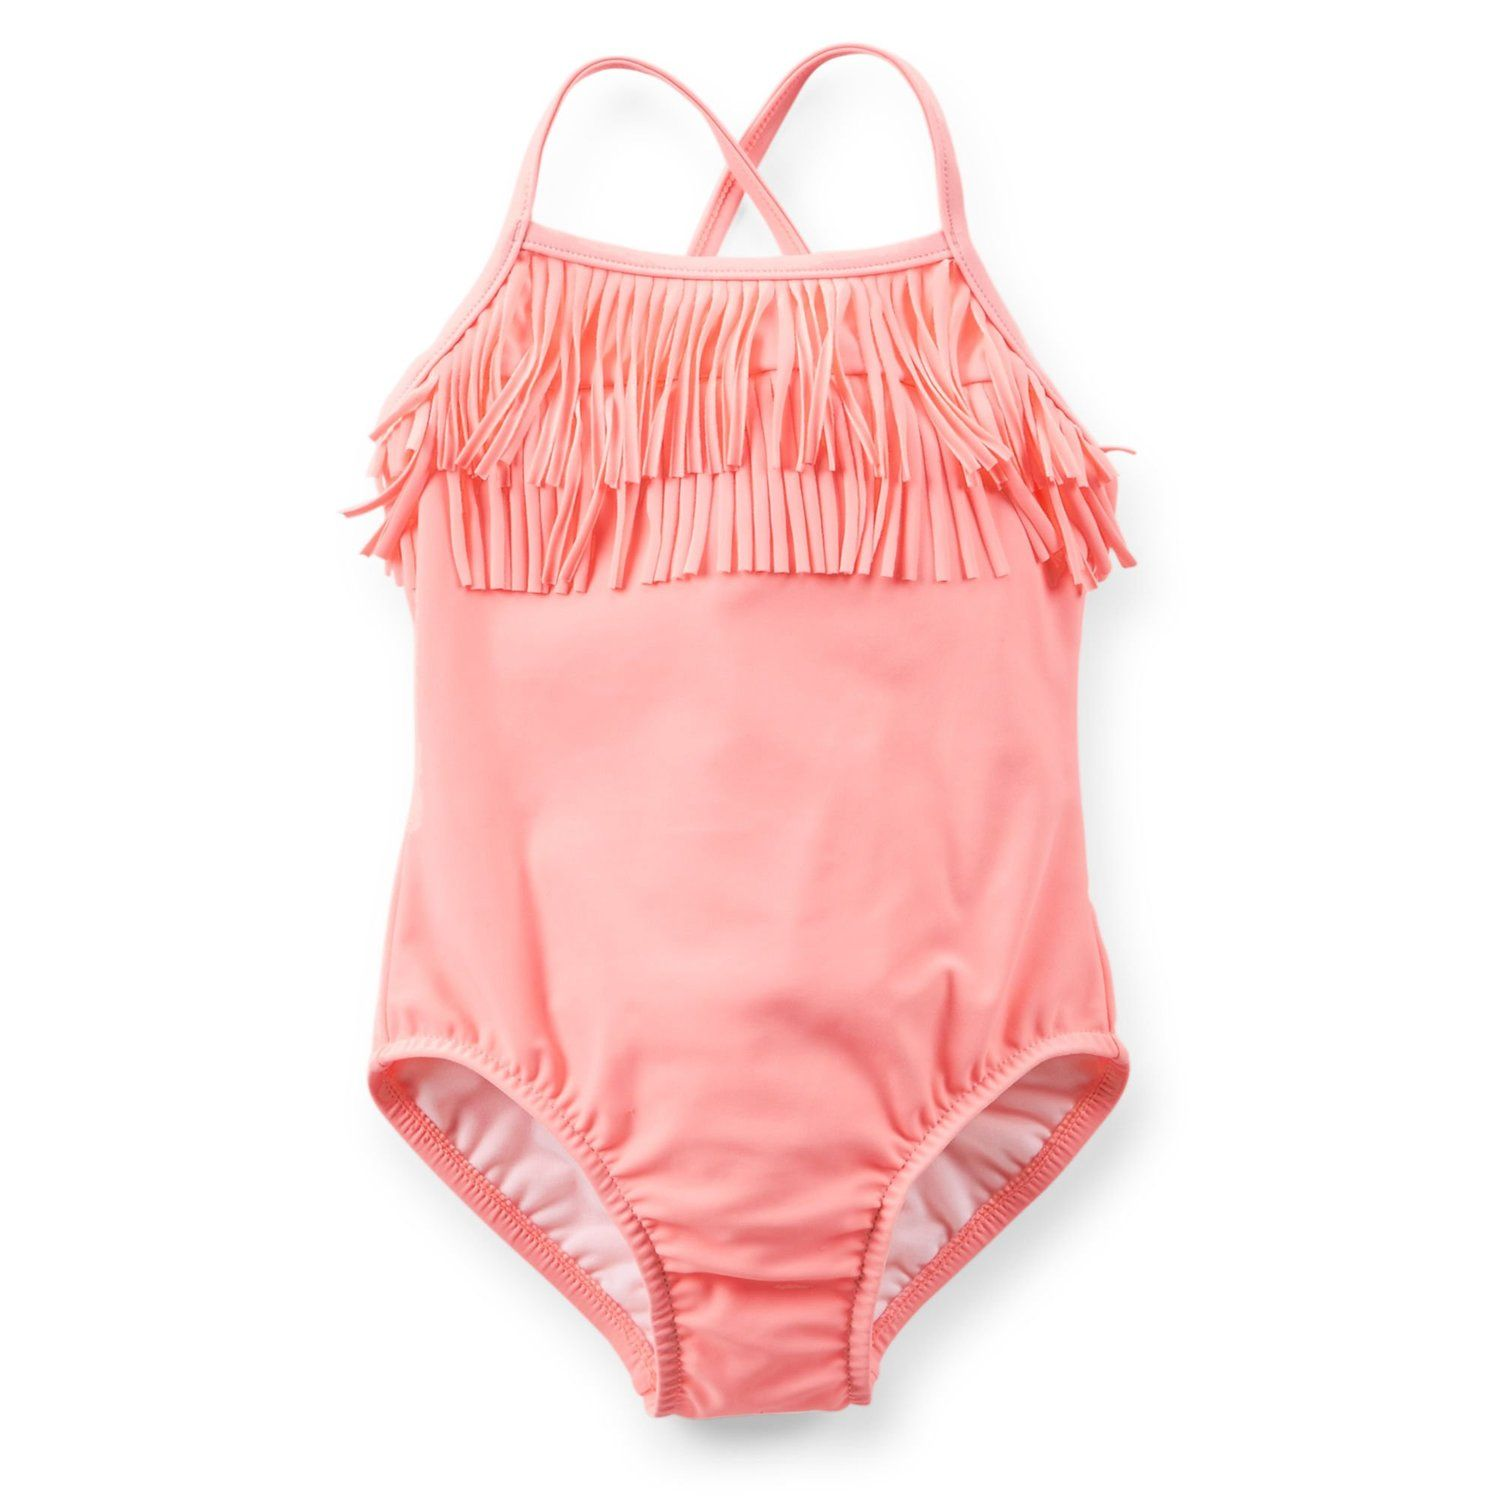 497686a274 Amazon.com  Carter s Baby-girls One Piece Swimsuit  Infant And Toddler One  Piece Swimsuits  Clothing